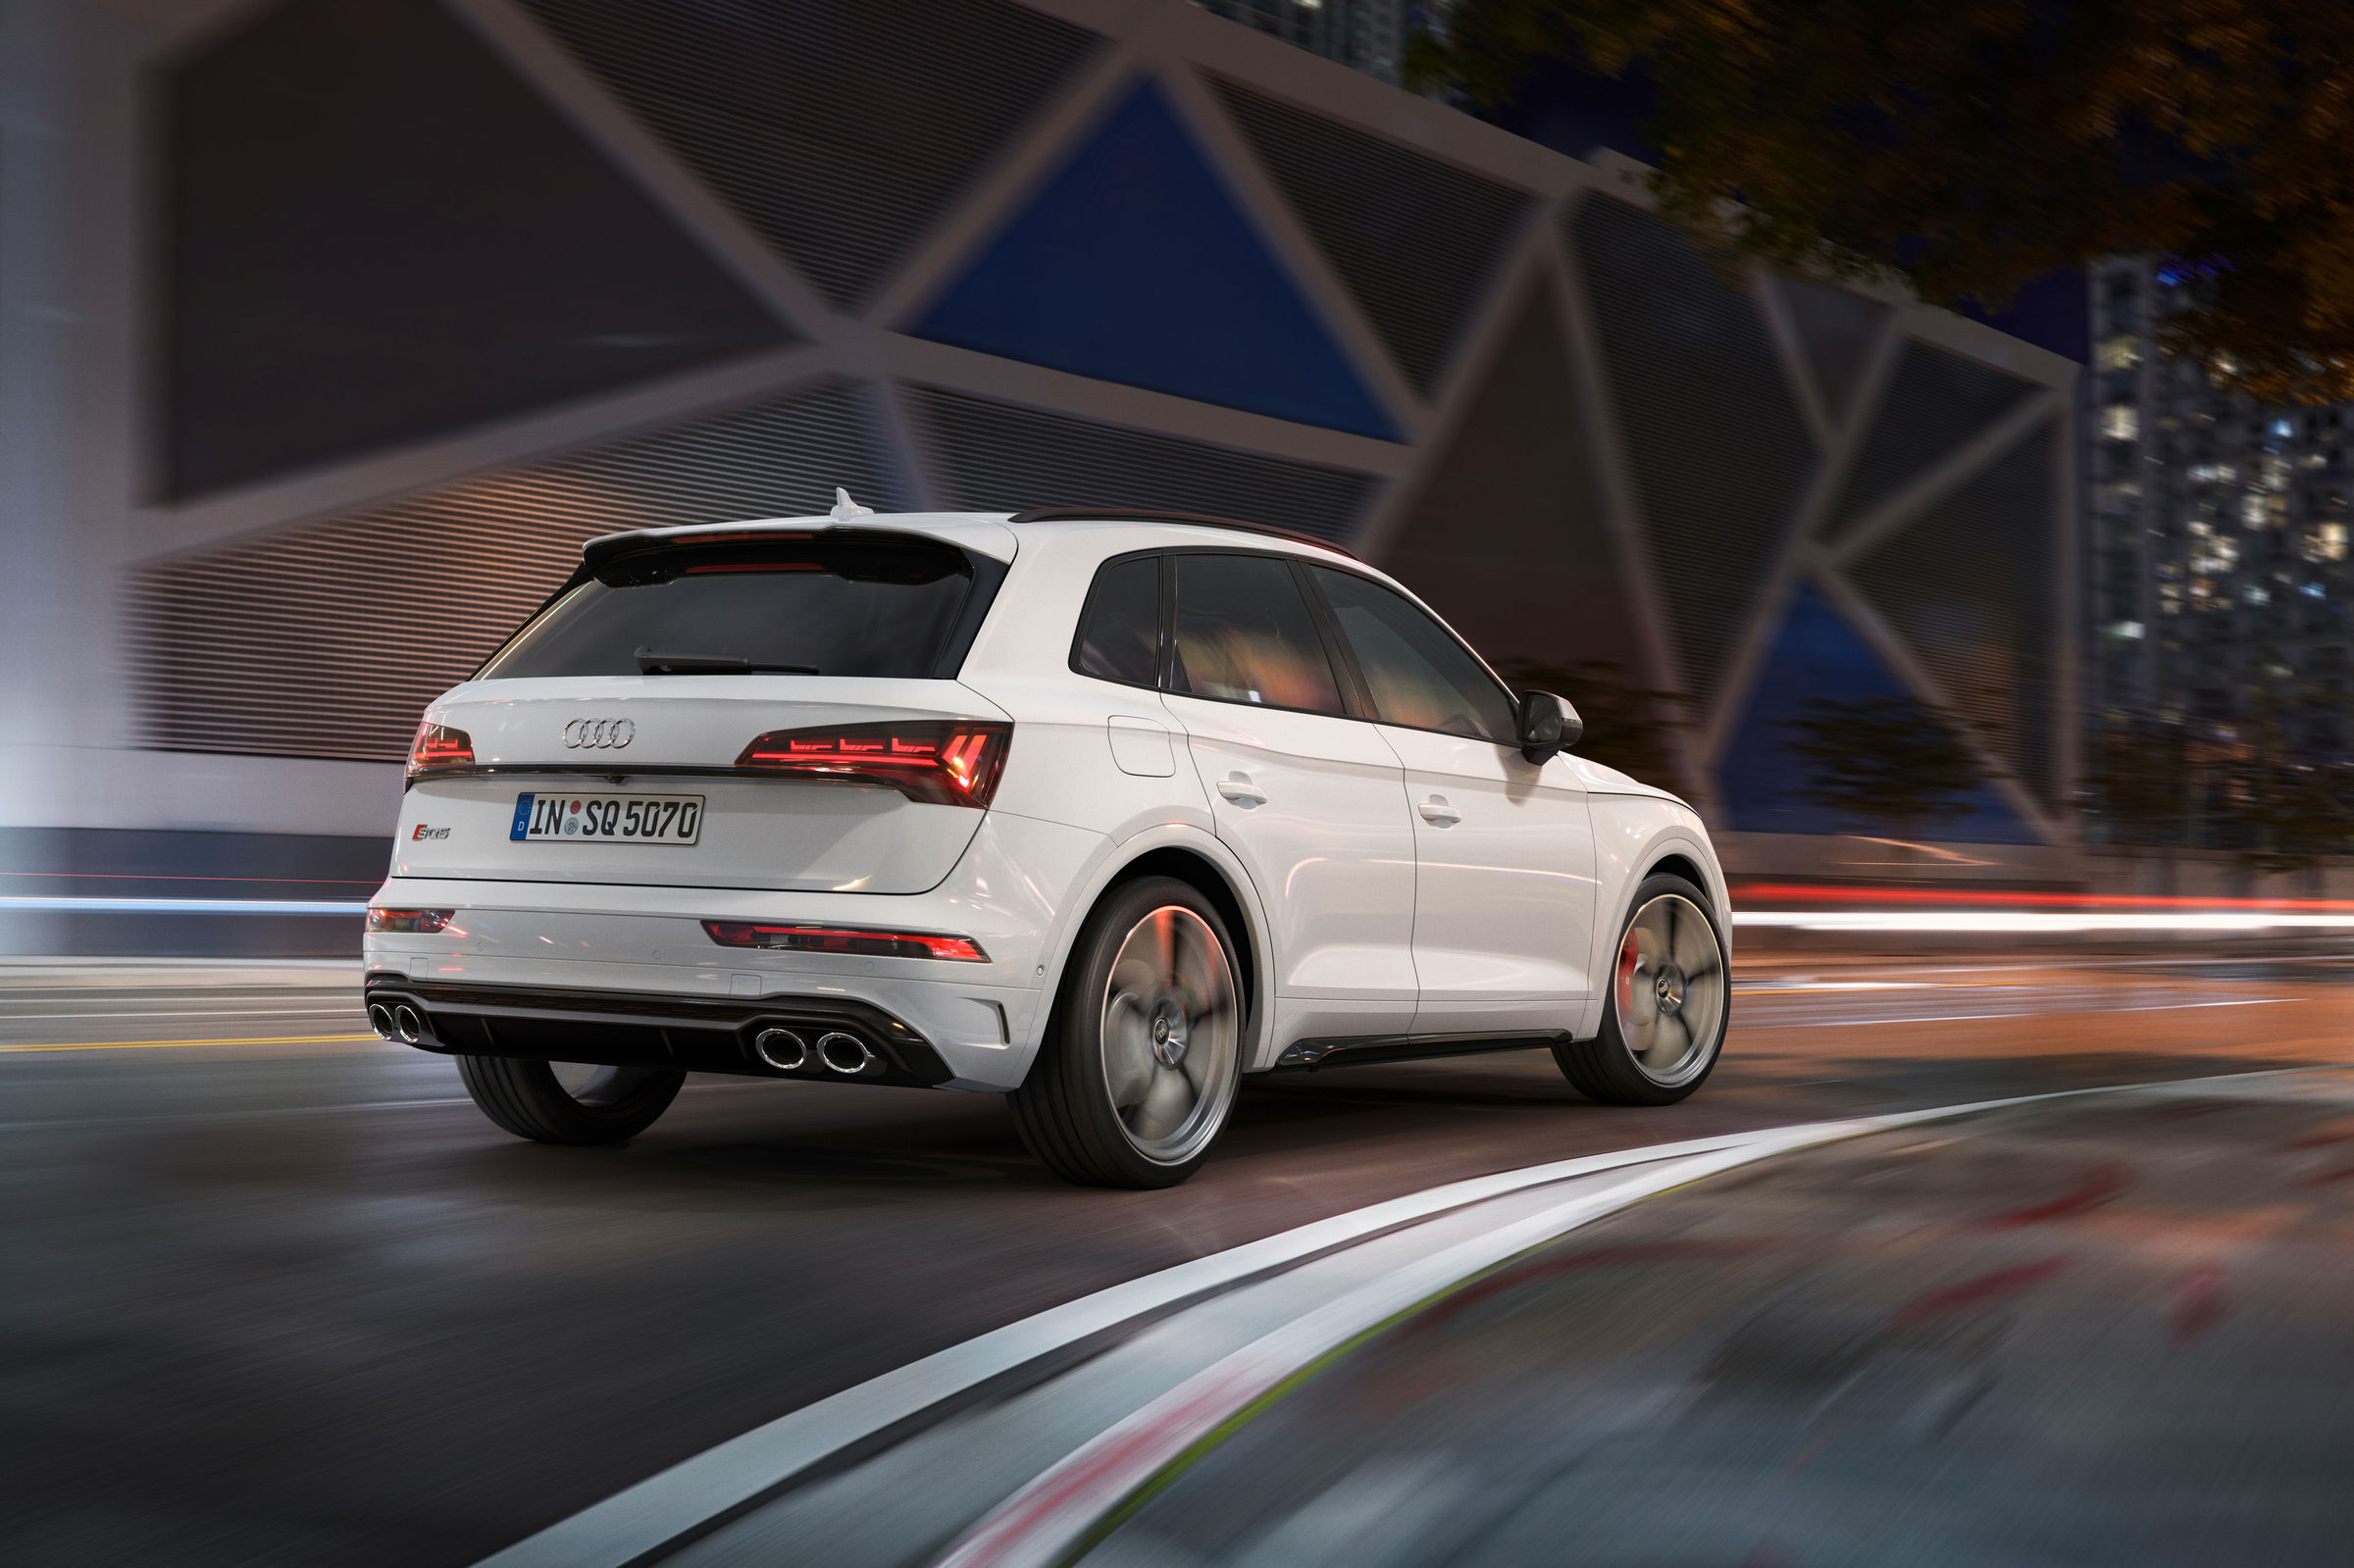 Sporty, powerful and efficient: Audi presents the new generation of the SQ5 TDI